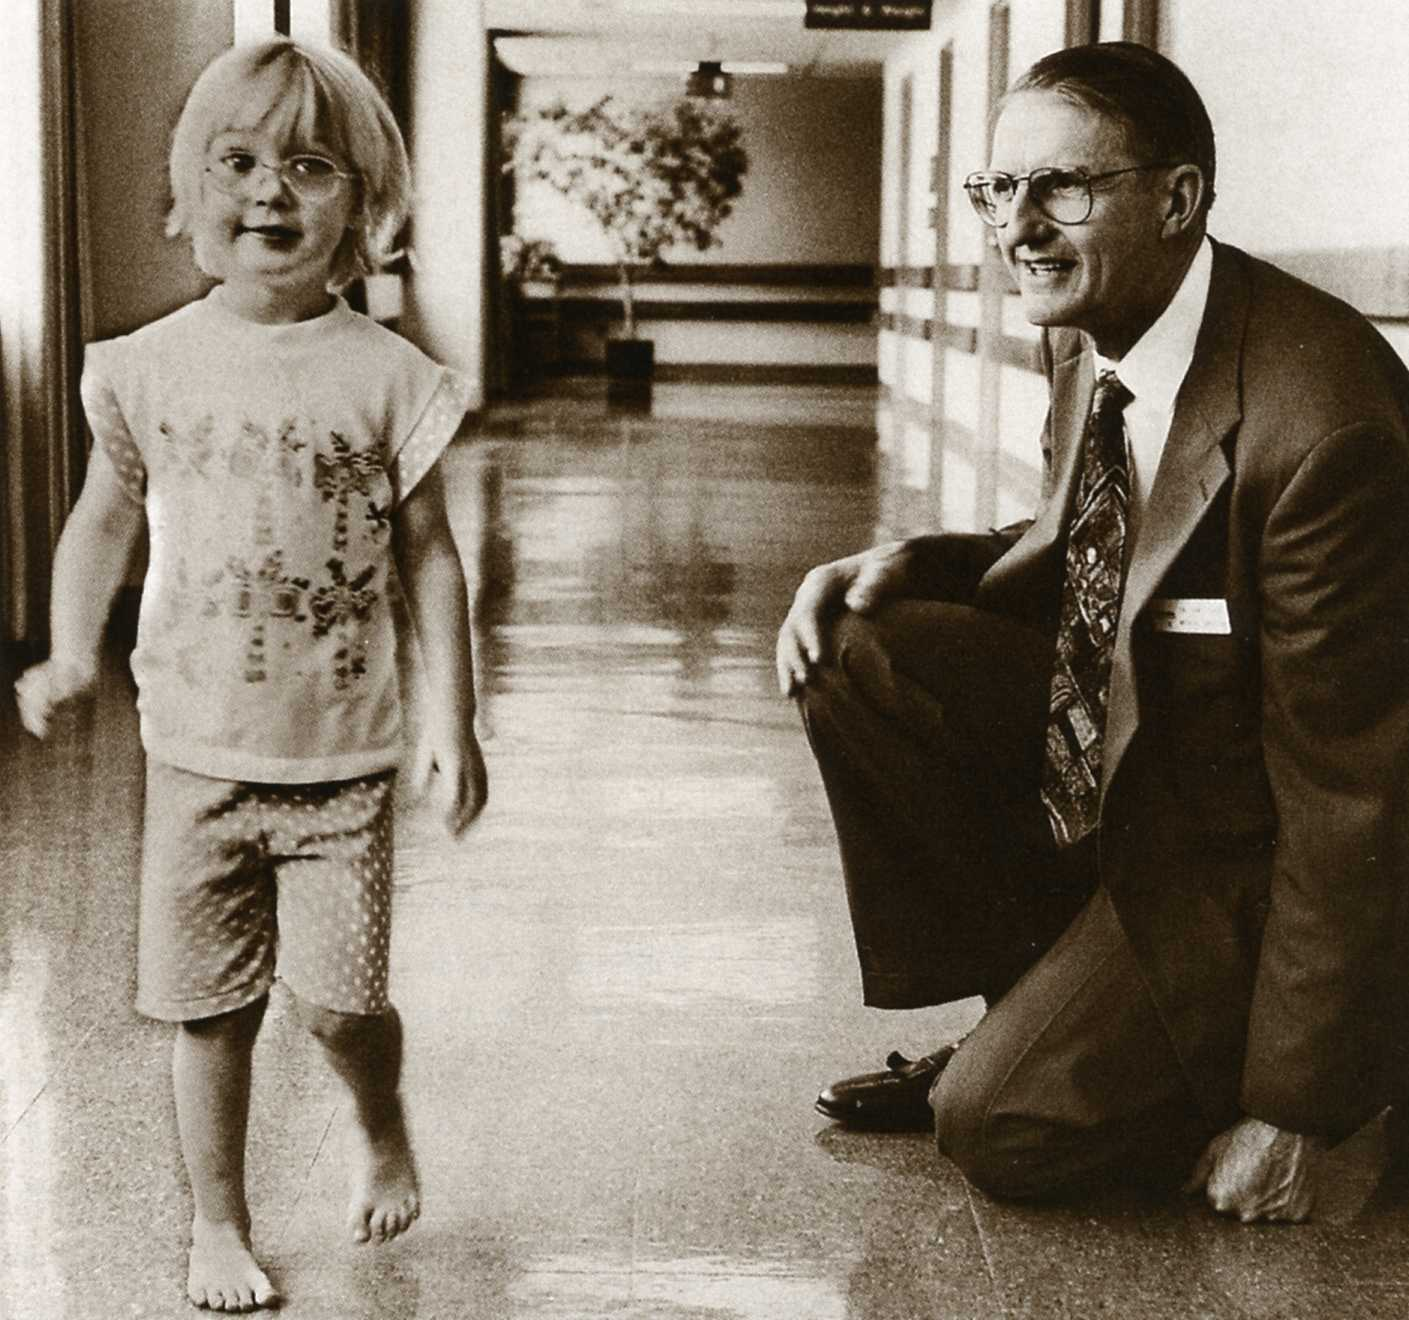 Jim Gage, MD, assesses a young patient's gait.